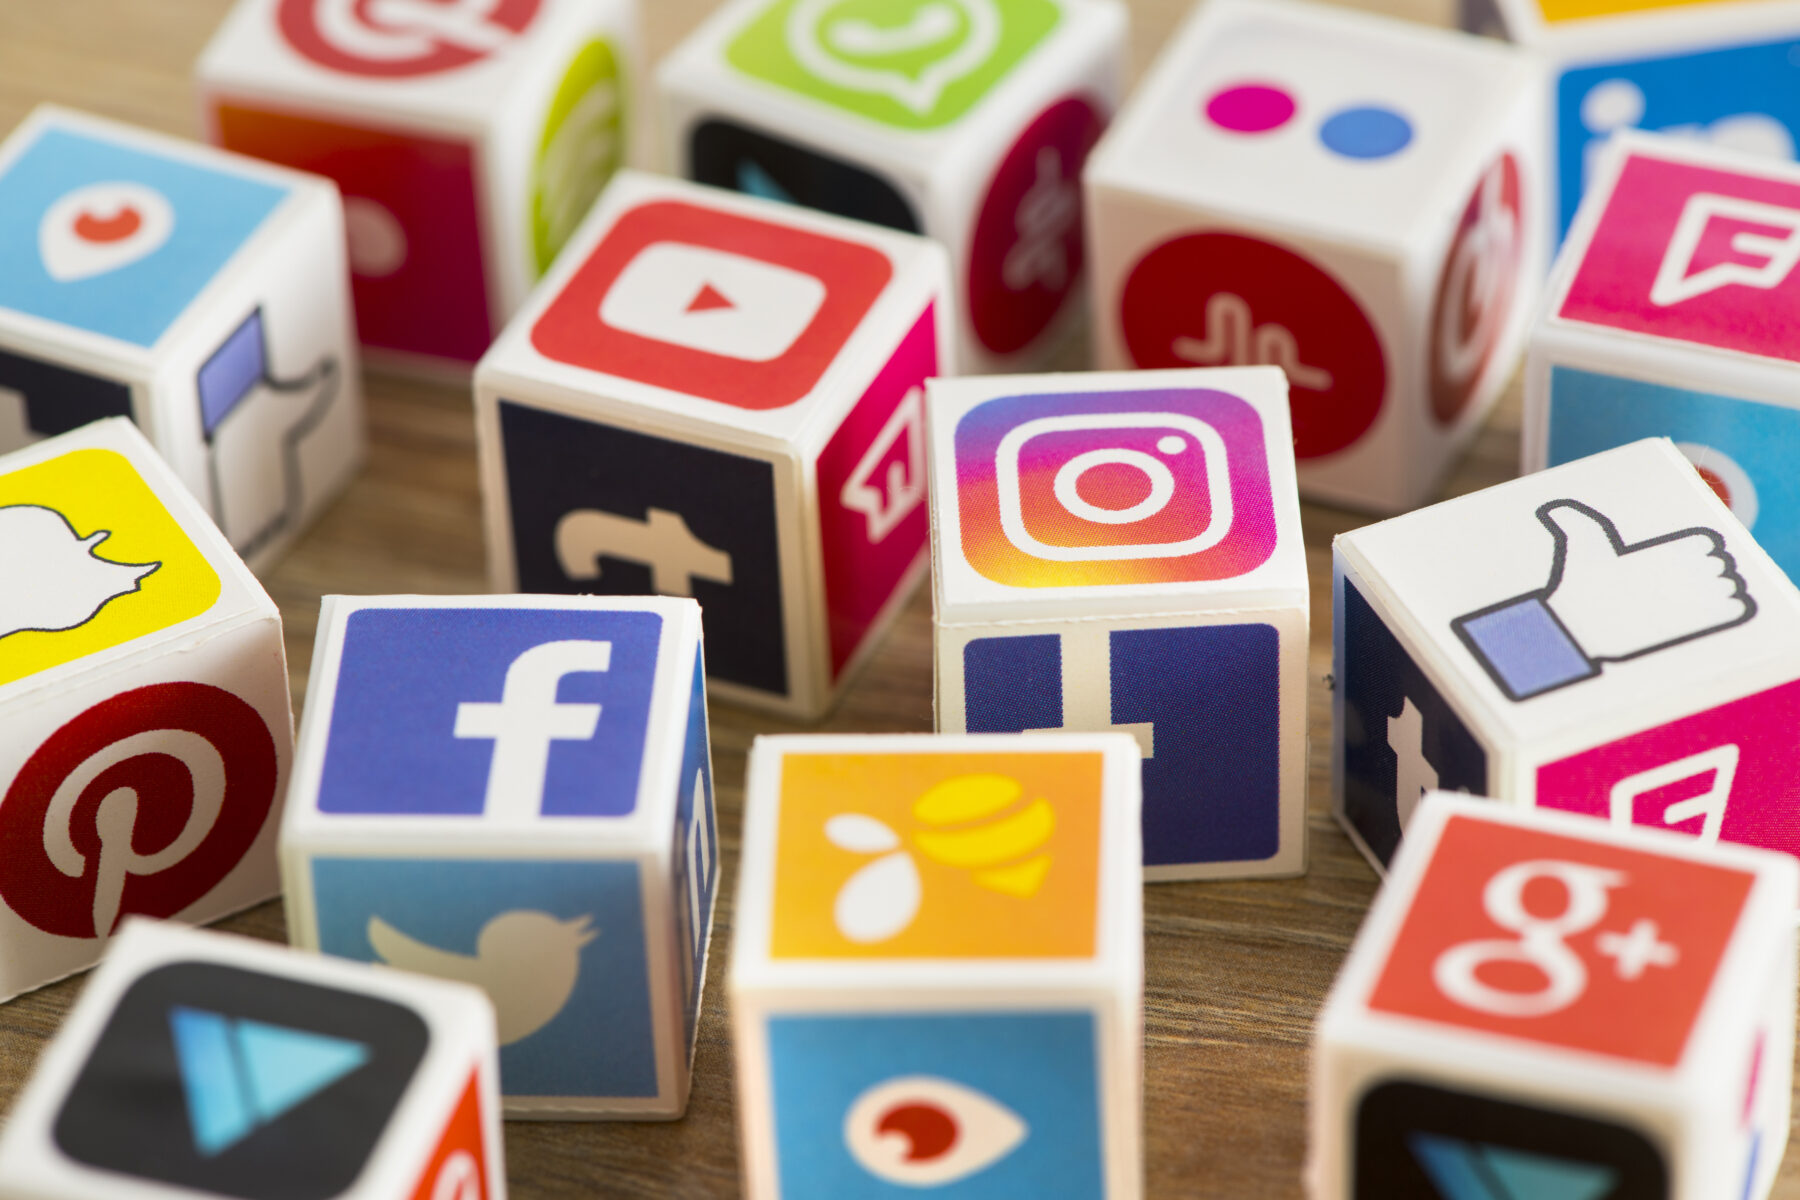 Social Media Policy, Politics, and Personal Expression